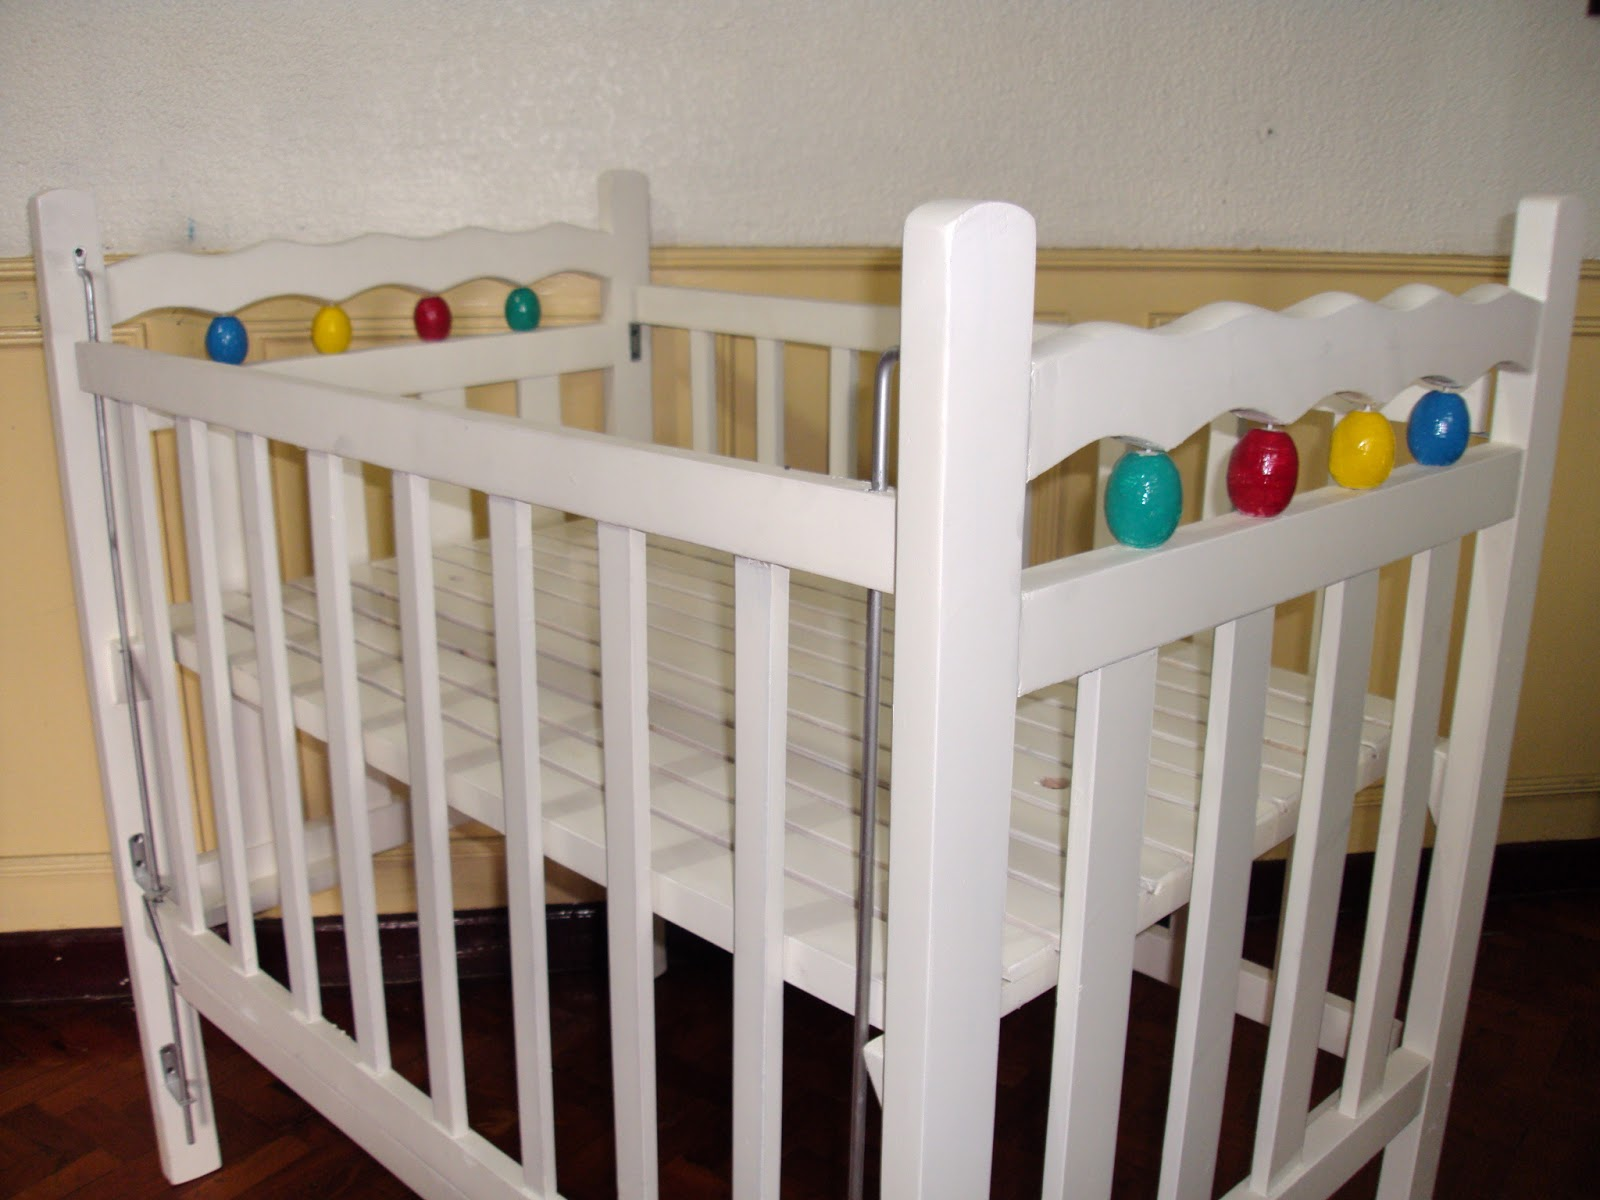 Baby bed with parents - Baby Bed With Parents 49